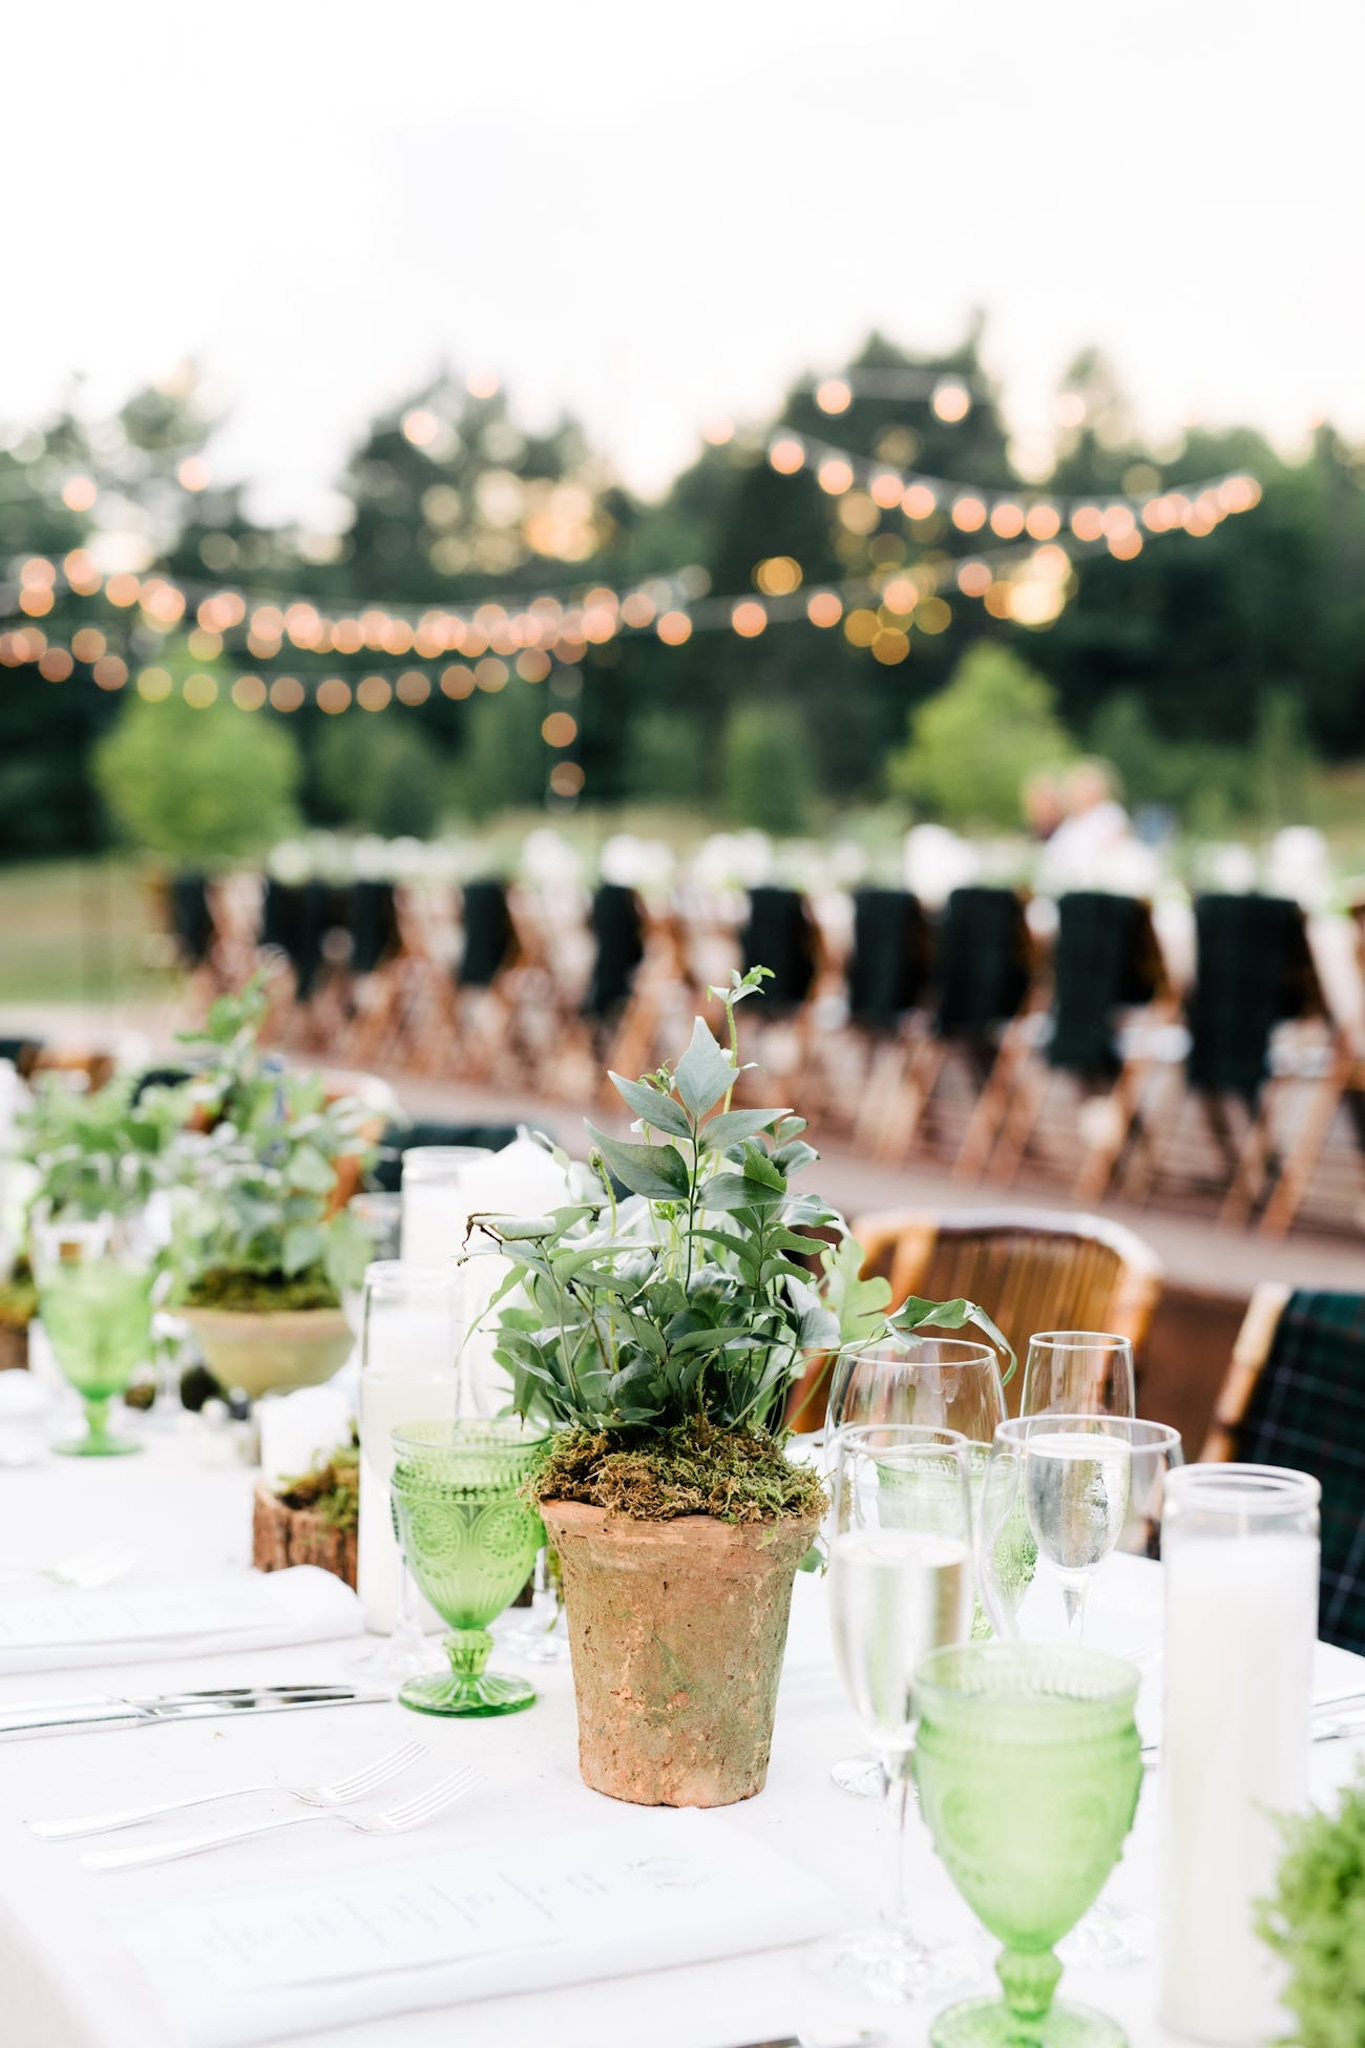 outdoor fall wedding table with plants and green details with white linens